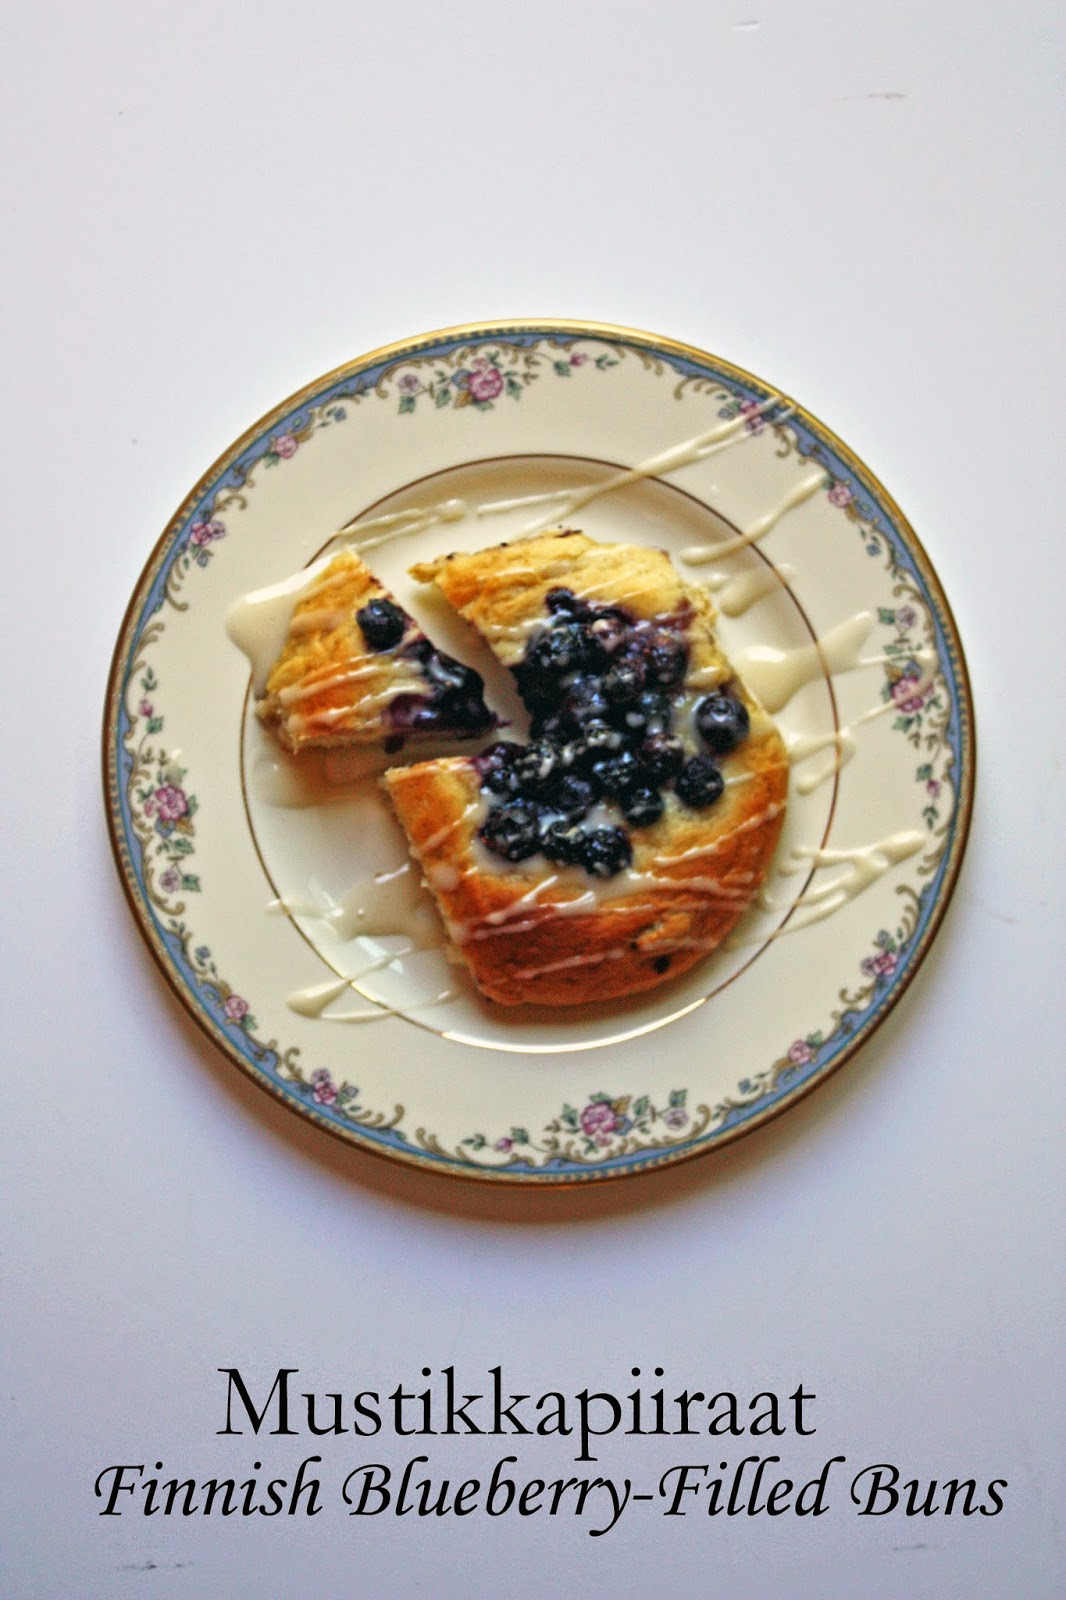 Mustikkapiiraat (Finnish blueberry-filled buns) with vanilla glaze